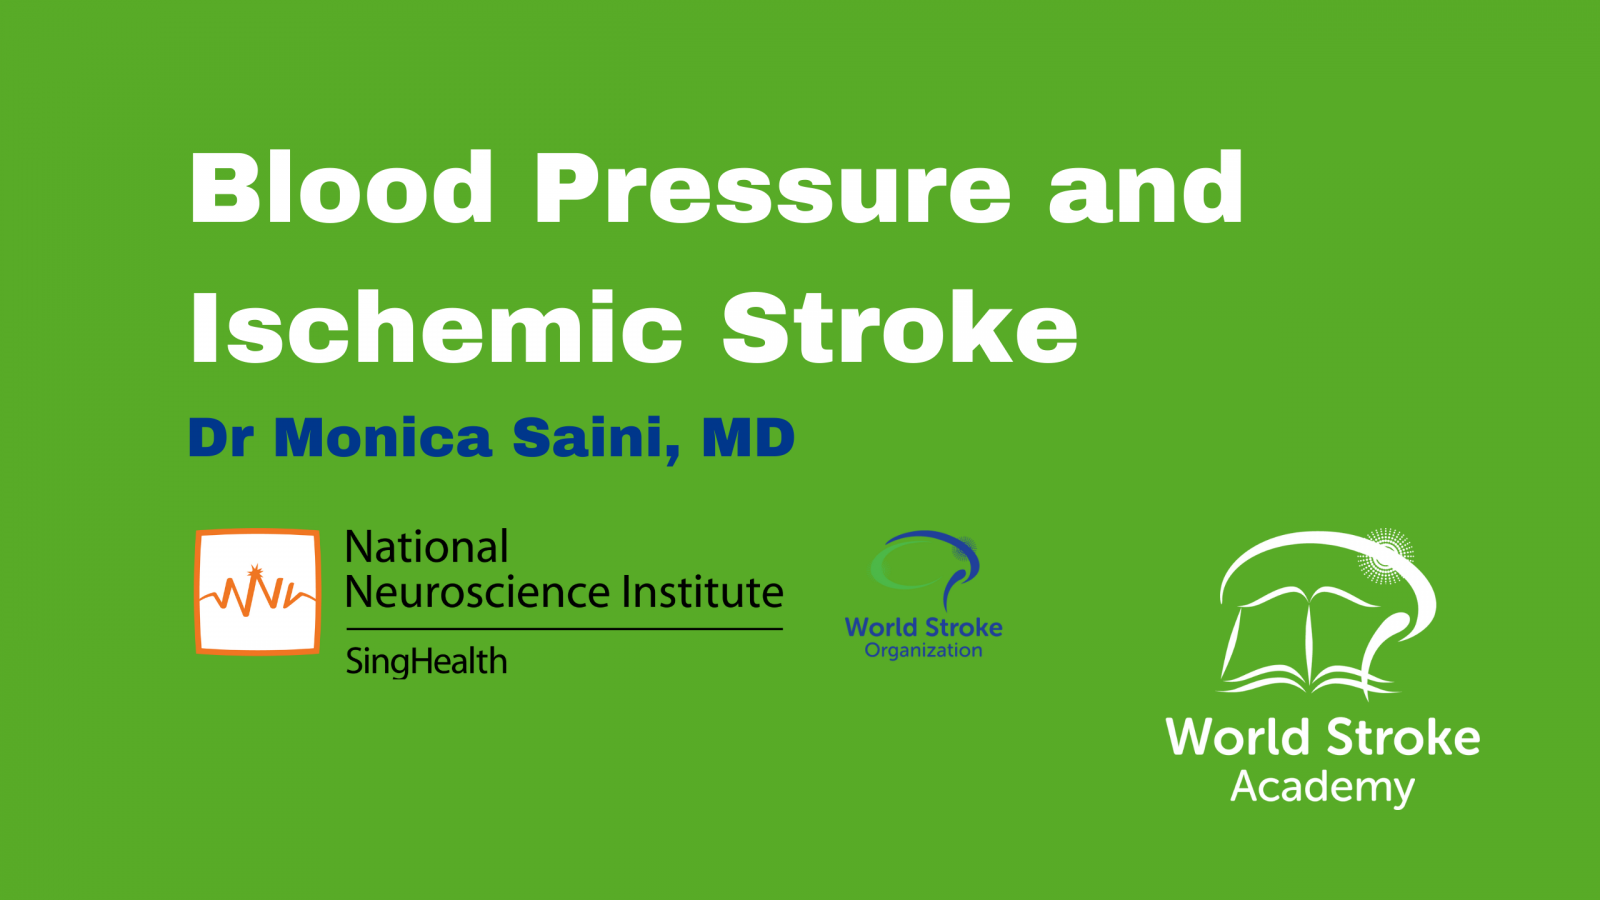 Blood Pressure and Ischemic Stroke